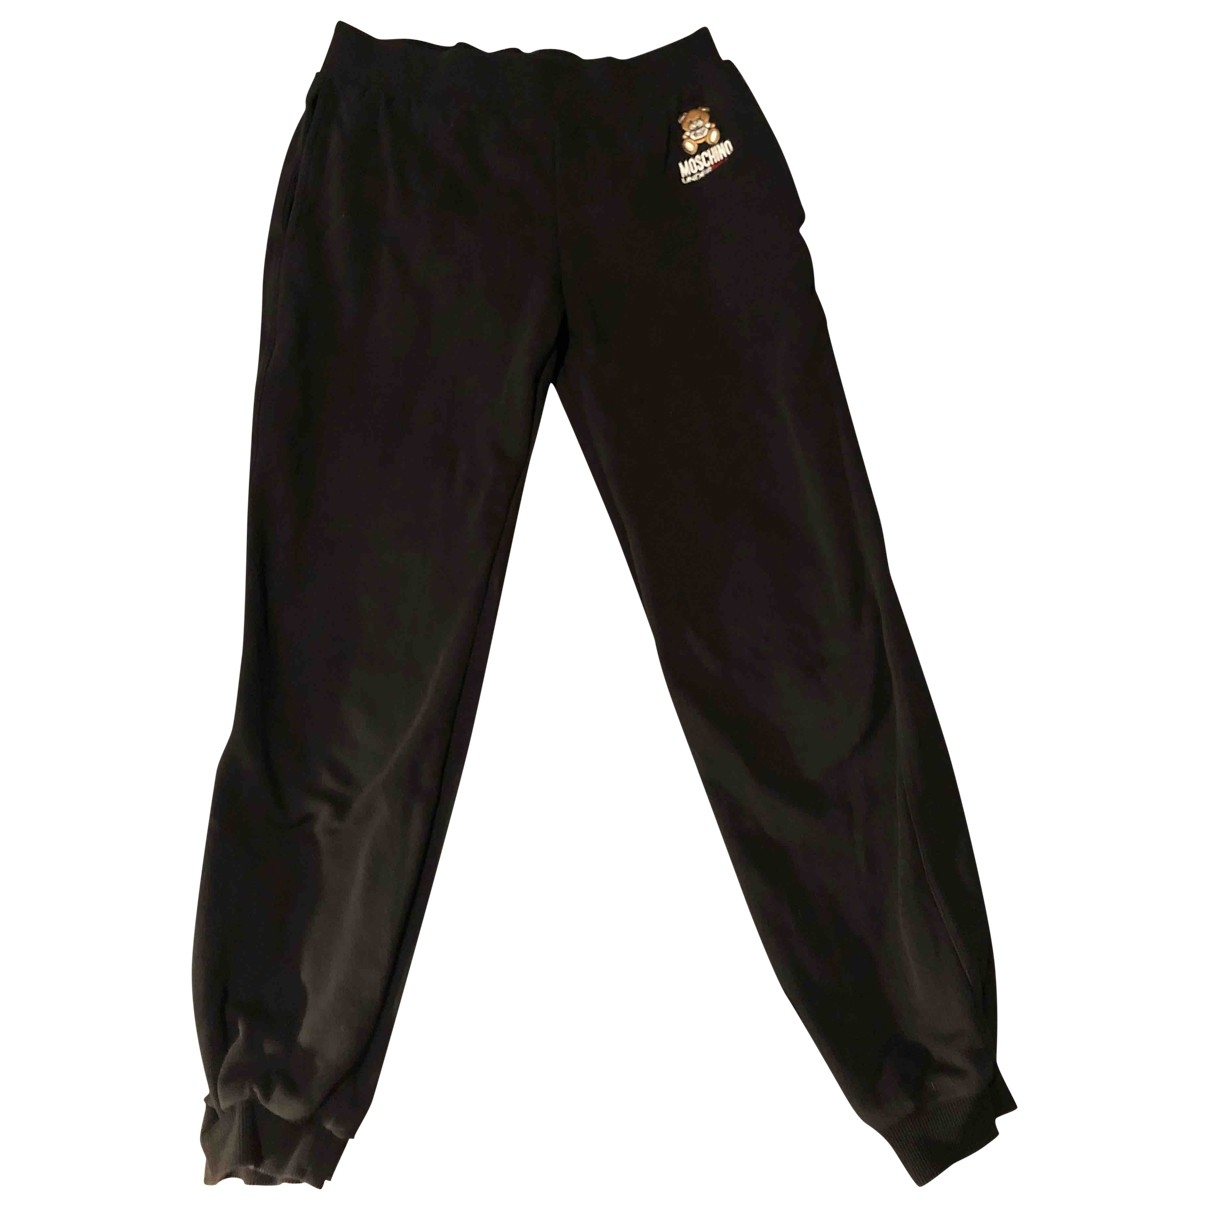 Moschino \N Black Cotton Trousers for Women S International